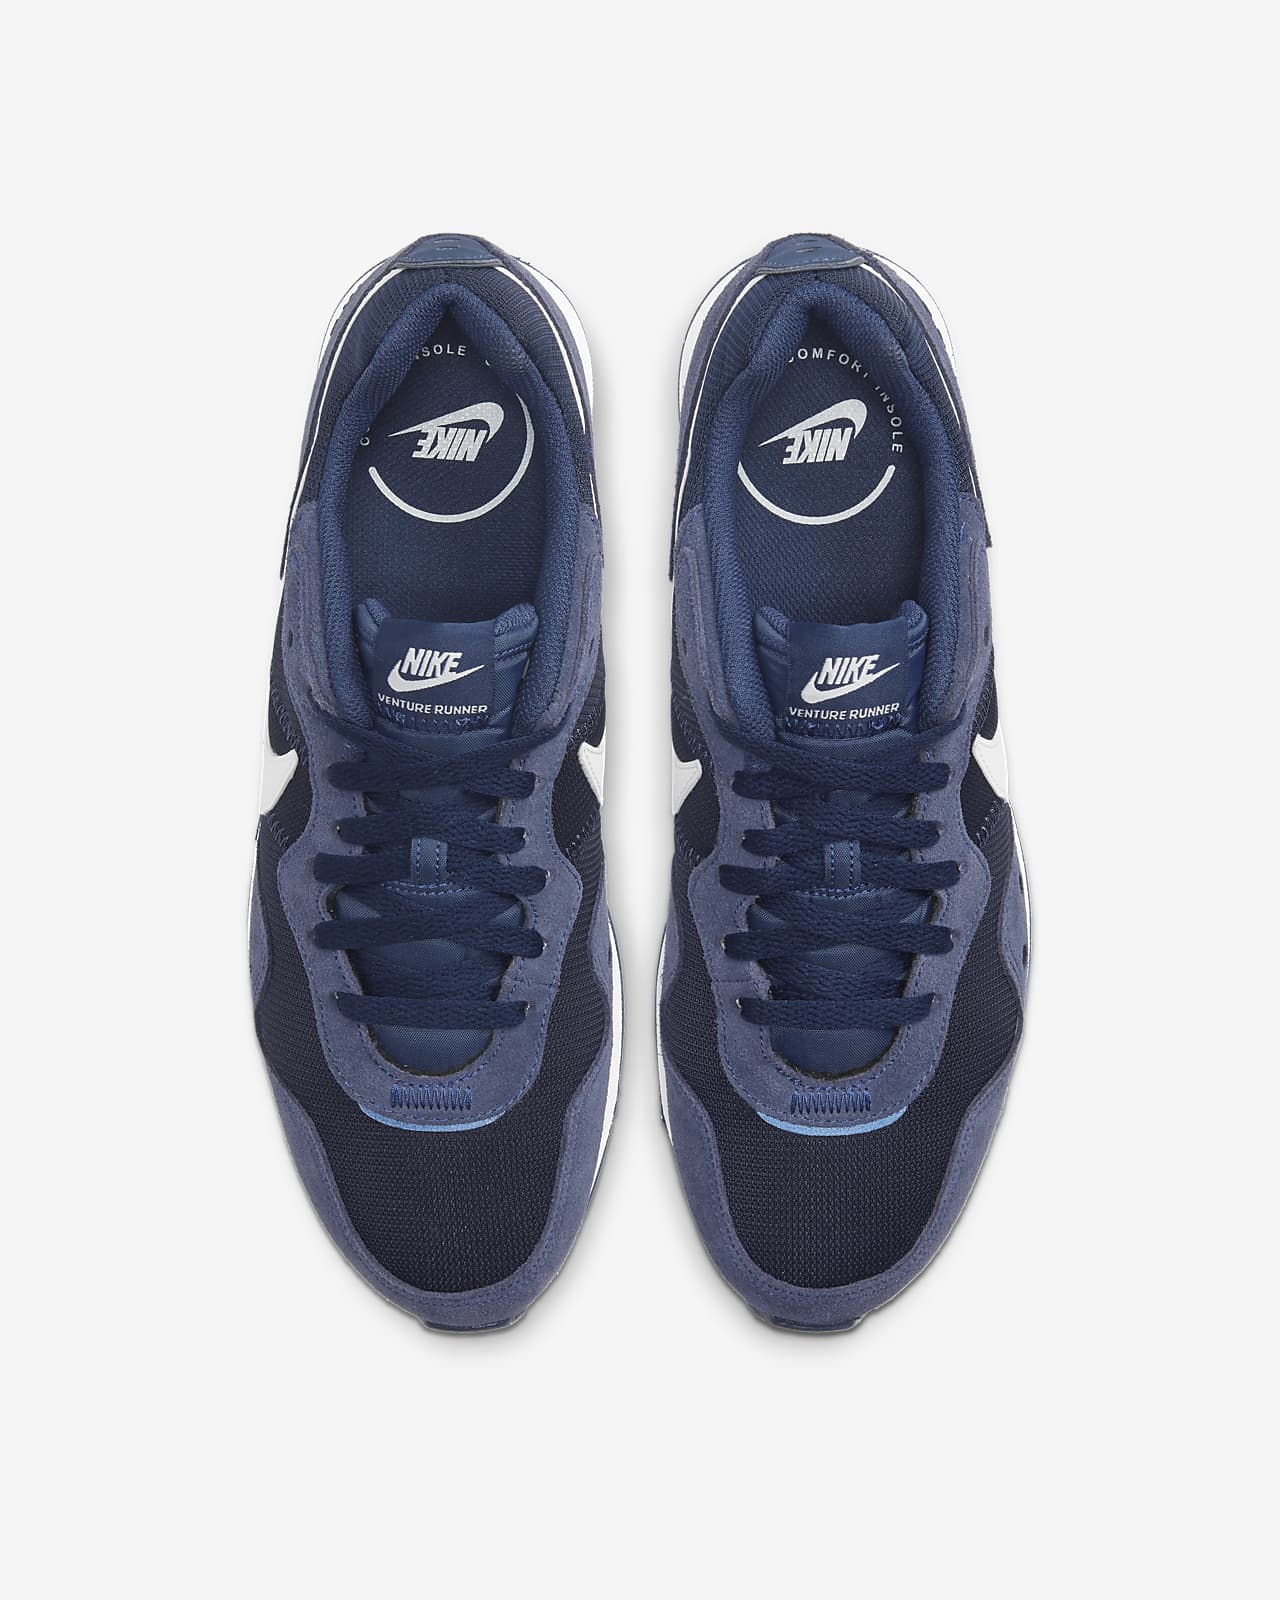 Chaussure Nike Venture Runner pour Homme